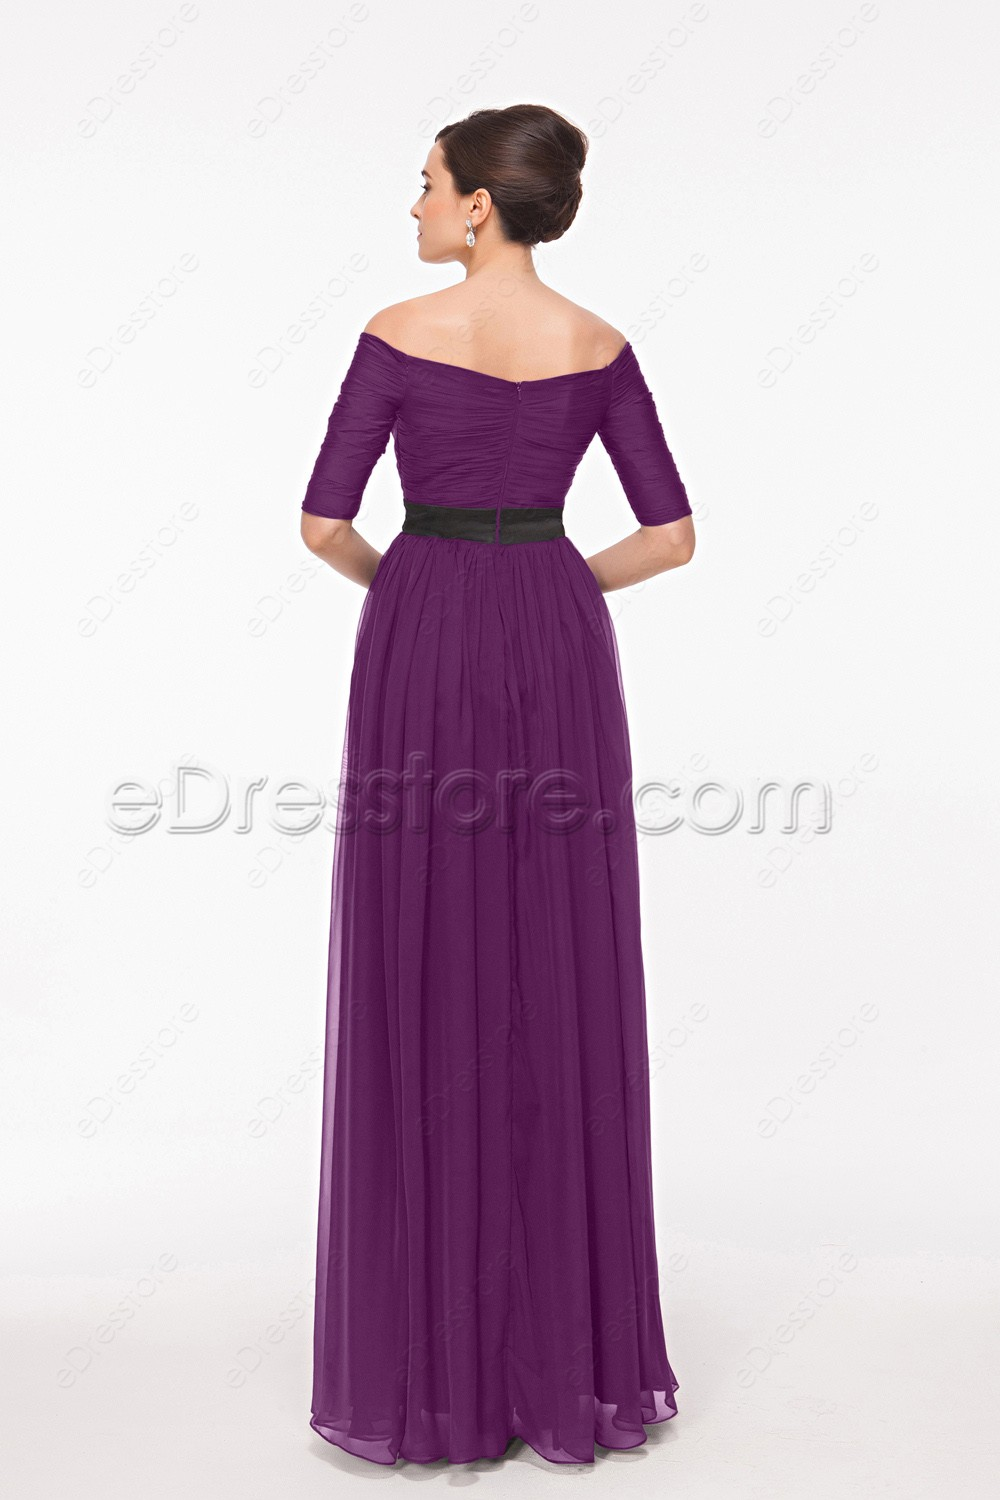 Modest magenta maid of honor dresses bridesmaid dresses for Maid of honor wedding dresses